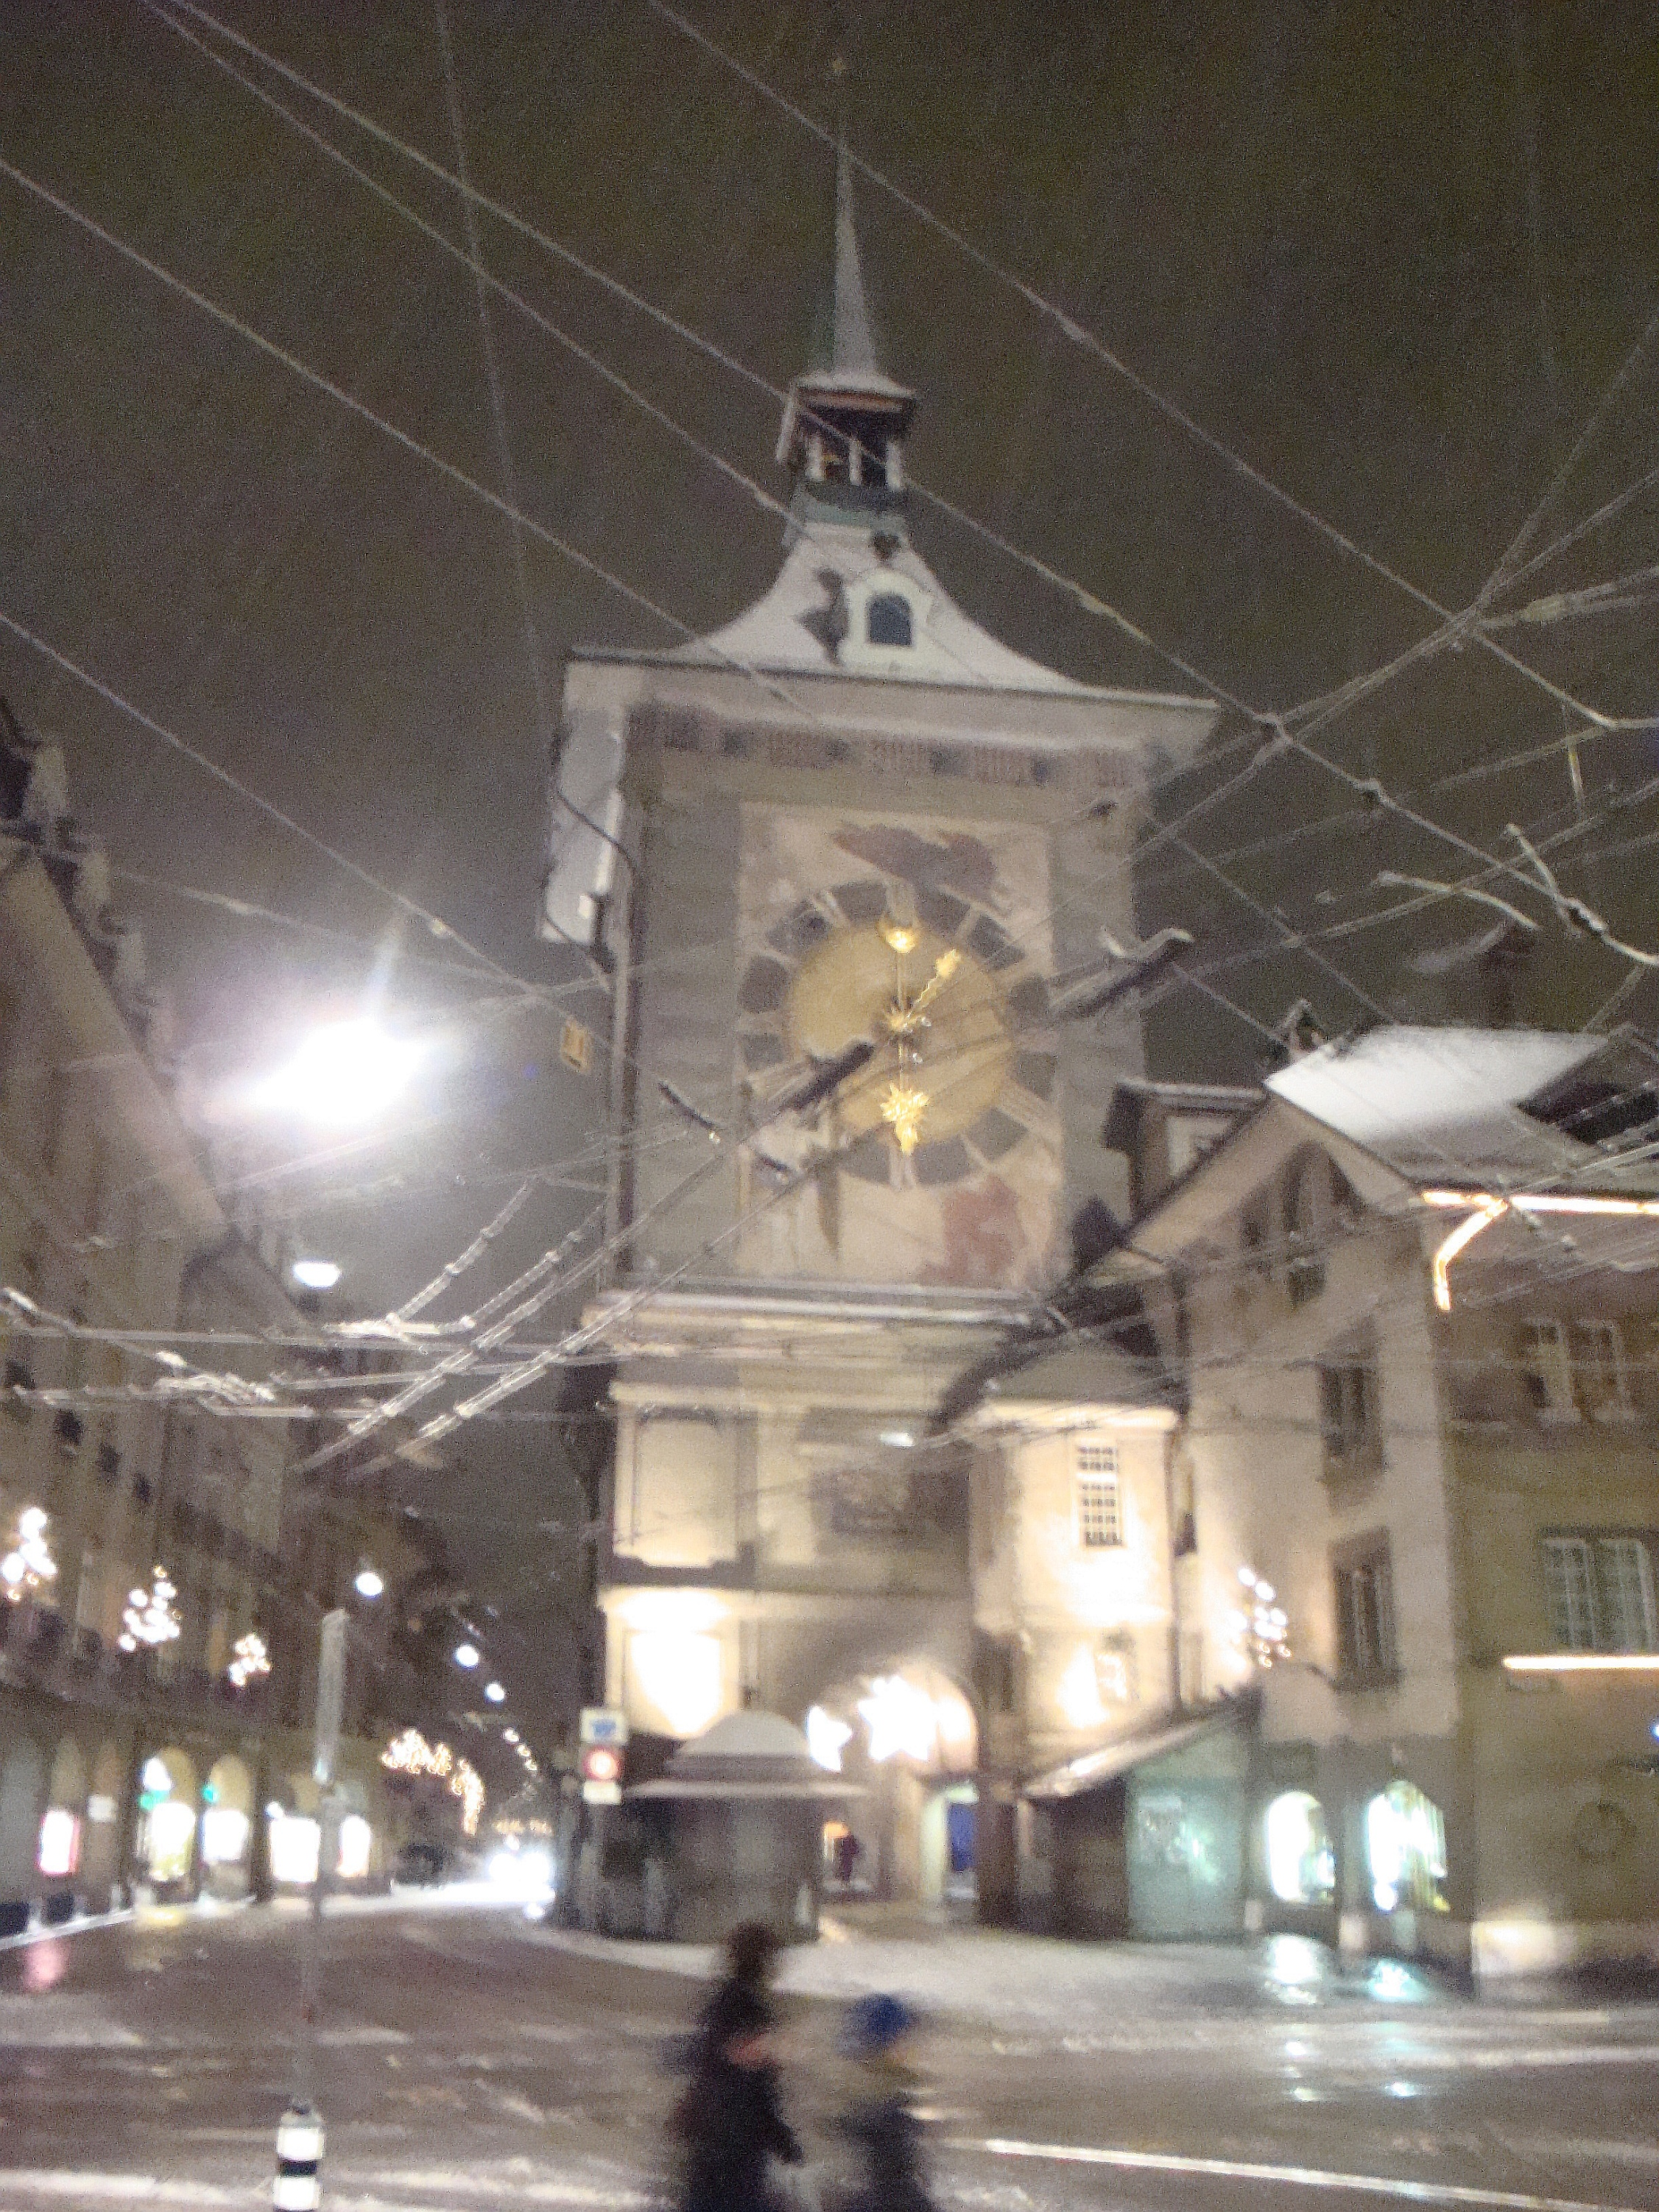 Zytglogge on the walk home, Bern, 24 December 2015 -- postgutenberg@gmail.com